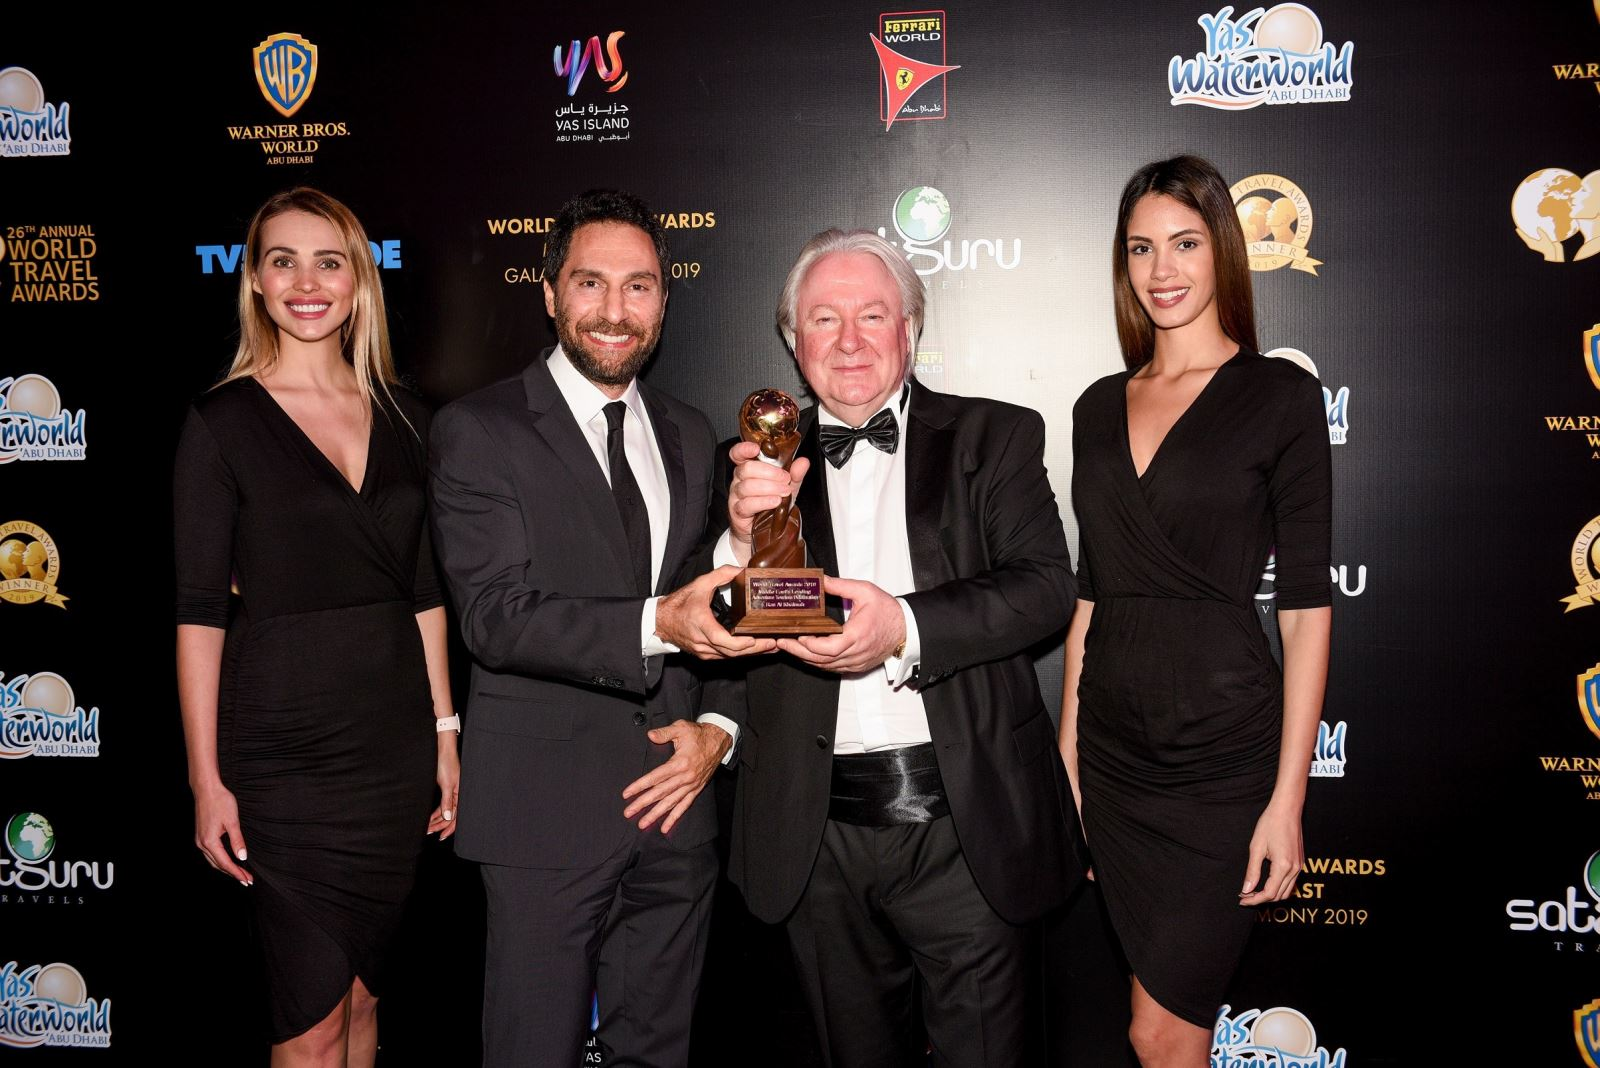 Ras Al Khaimah Scores Double Win At World Travel Awards